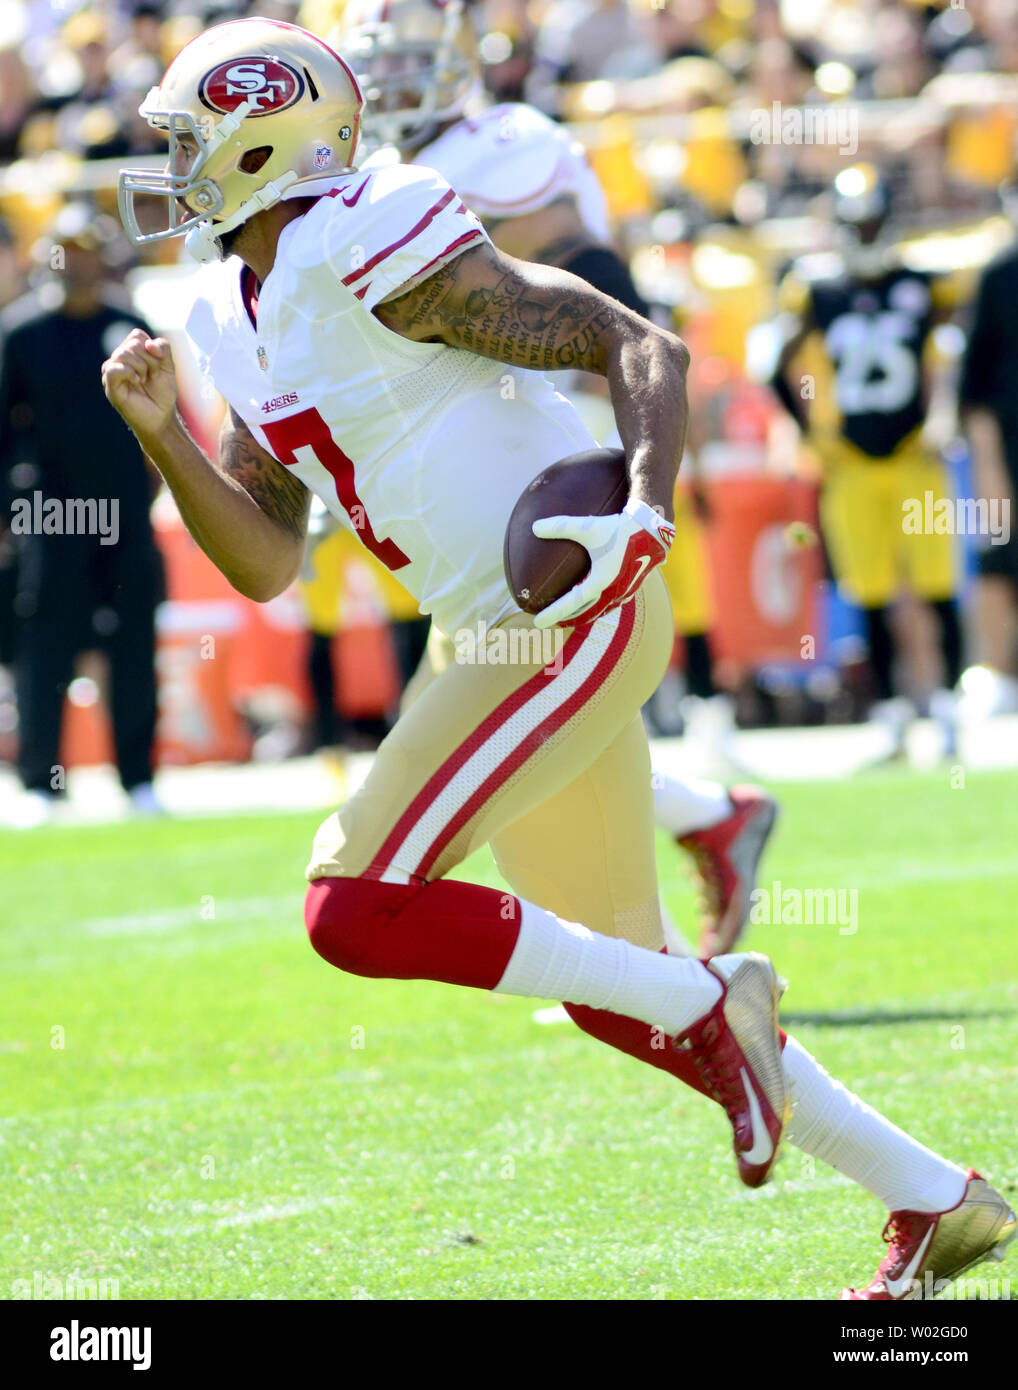 San Francisco 49ers quarterback Colin Kaepernick (7) fakes a handoff and runs  14 yards in first quarter against the Pittsburgh Steelers  at Heinz Field in Pittsburgh on September 20, 2015.  Photo by Archie Carpenter/UPI - Stock Image